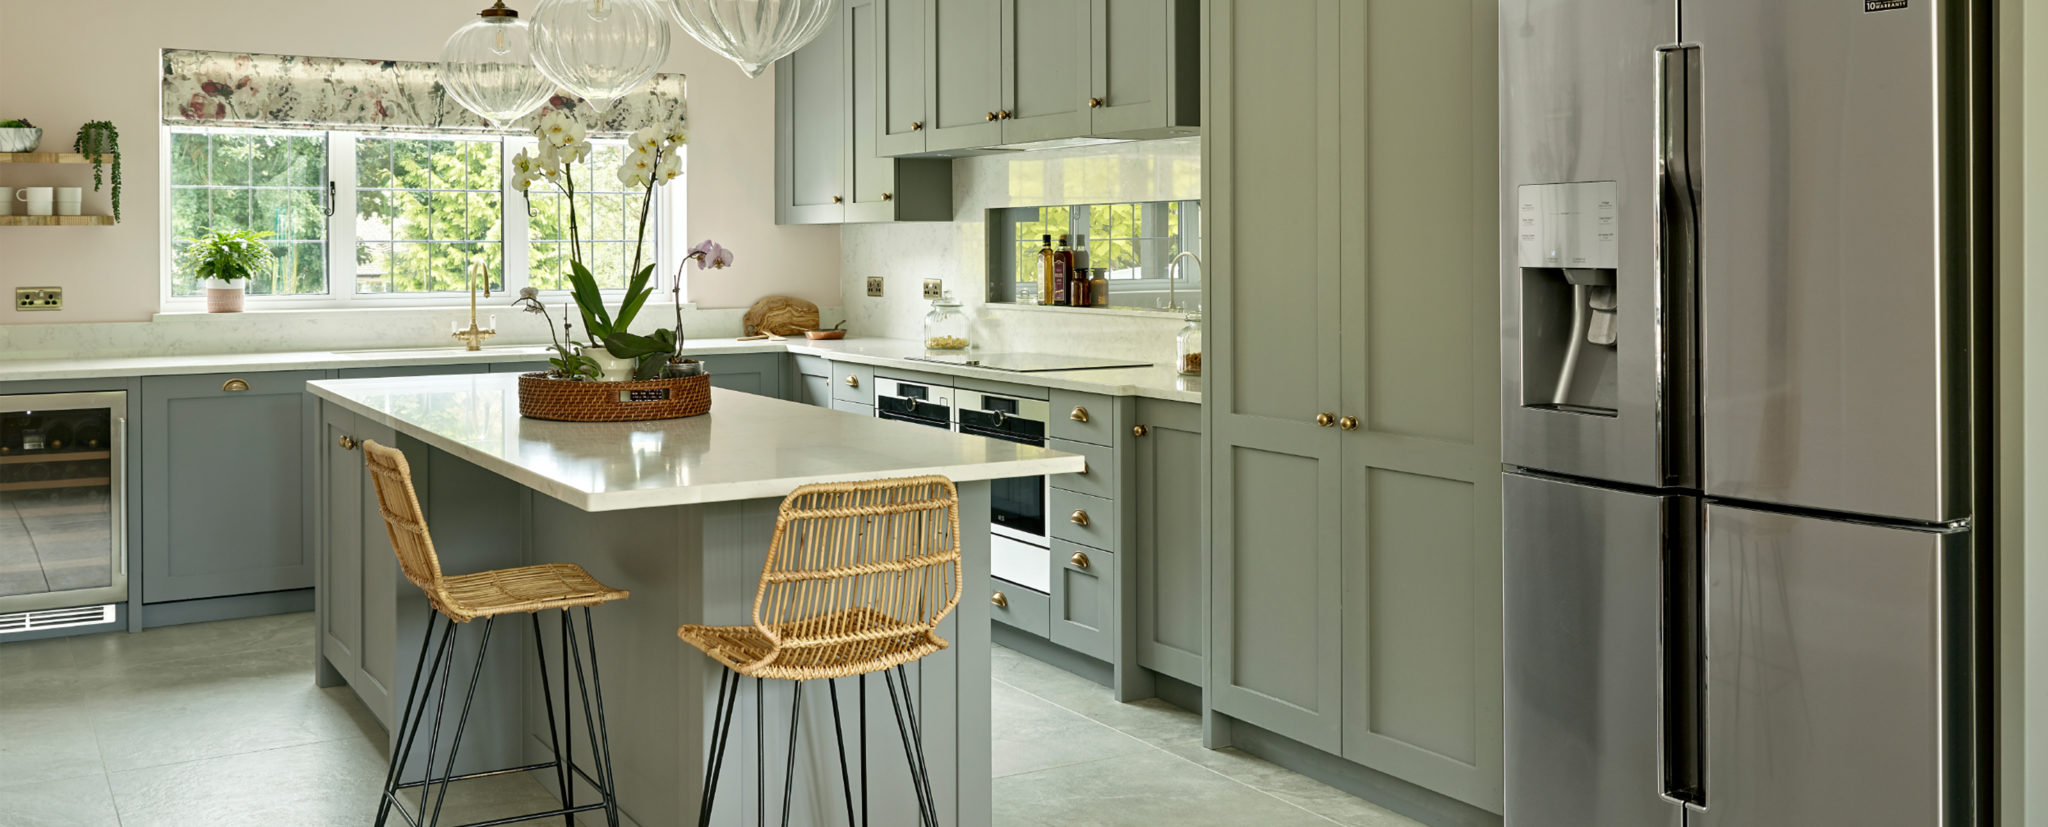 Kingwood kitchen design with island and pantry cabinet. Lead grey cabinets with brass hardware. Pale pink walls, white quartz worktops and stainless steel appliances.